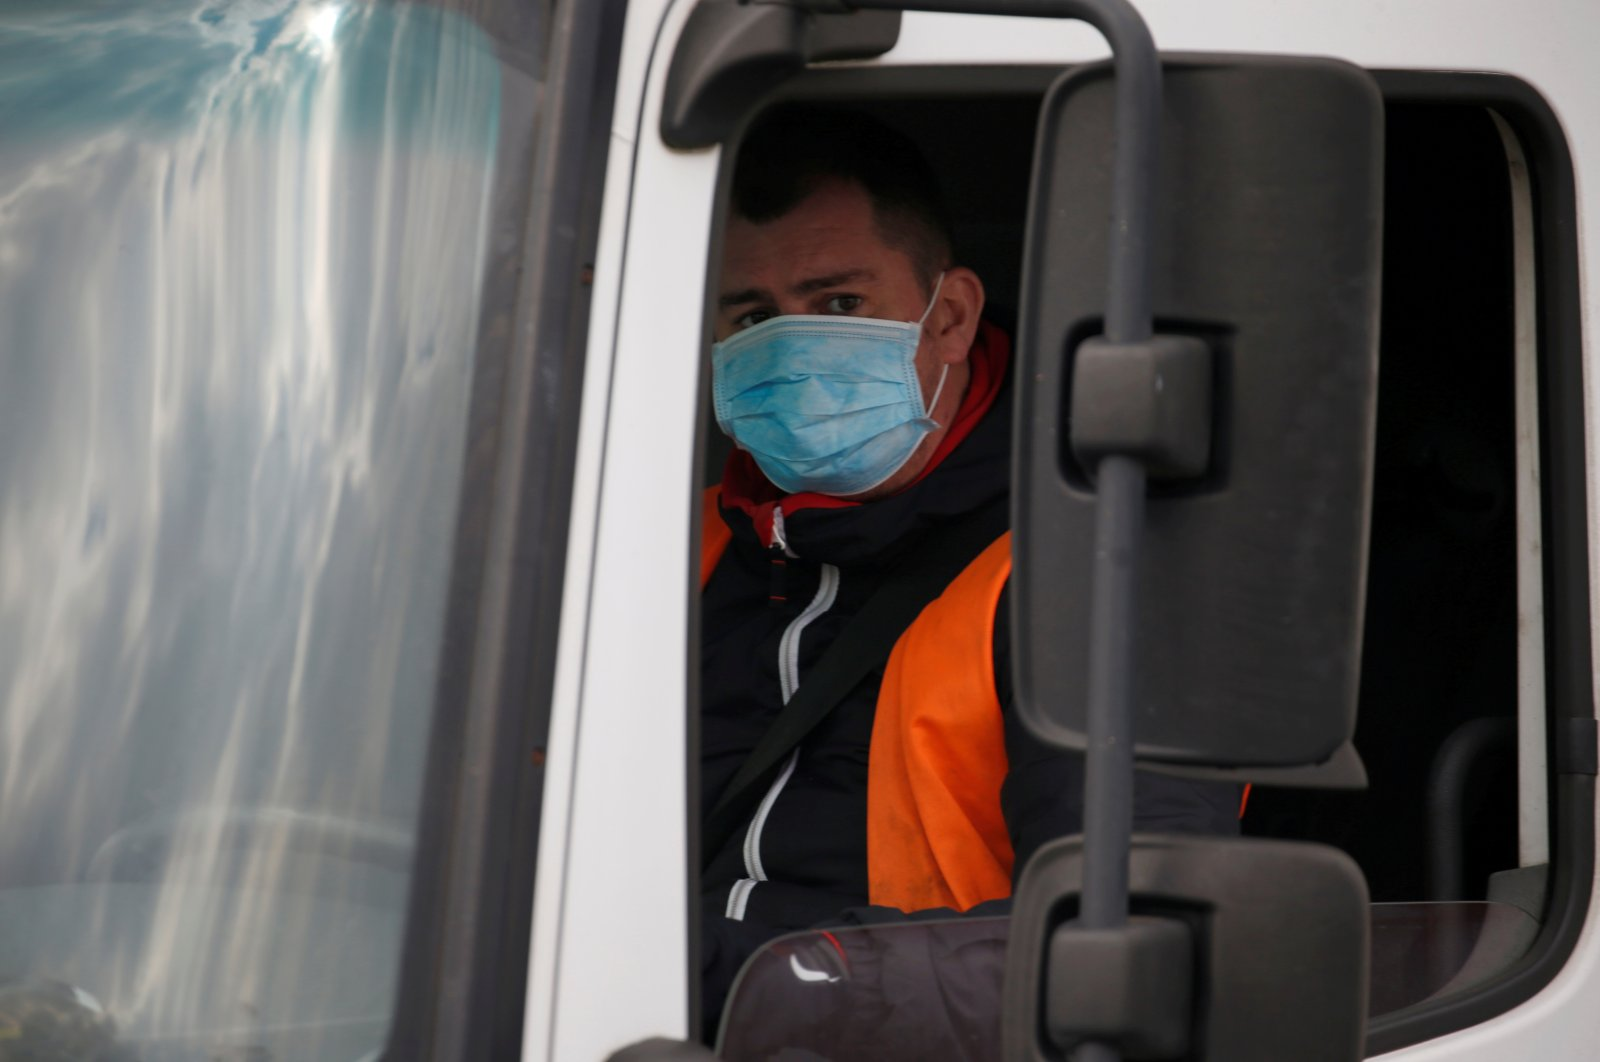 A truck driver wearing a protective face mask arrives at the Amazon logistics center in Lauwin-Planque, northern France, March 19, 2020. (Reuters Photo)